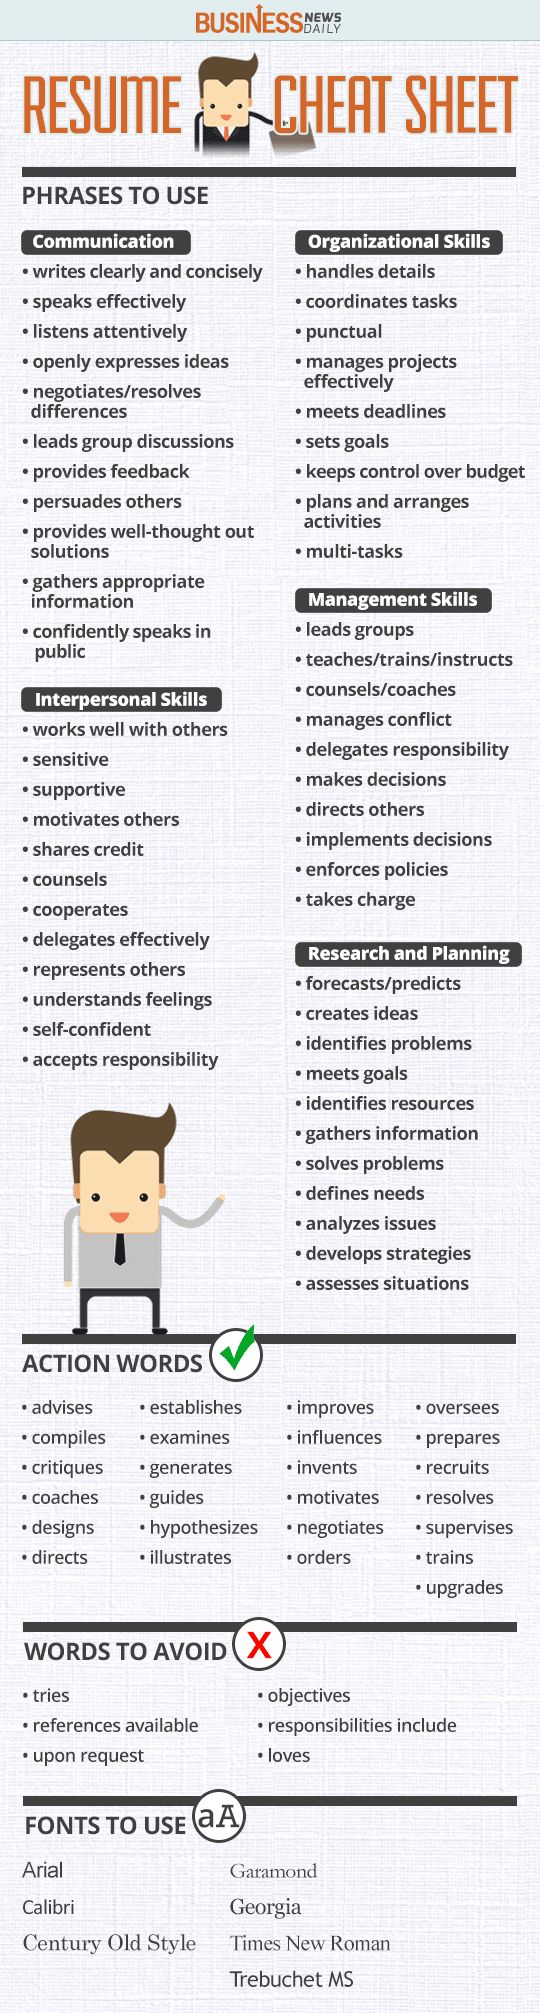 A Job Resume Fascinating 119 Best Job Resume Images On Pinterest  Gym Career And Productivity